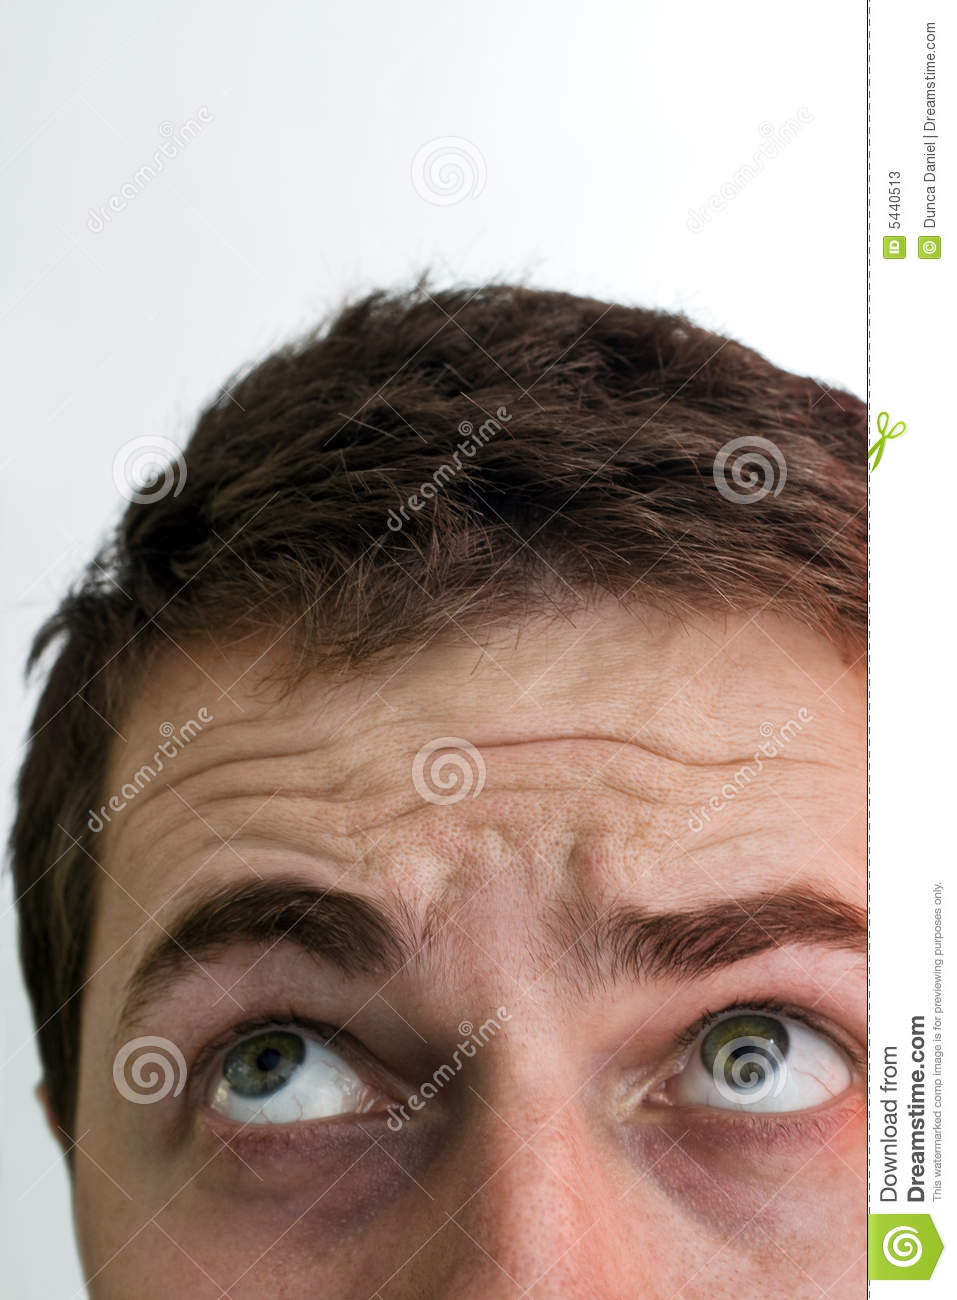 Eyes Of Man Looking Up And Above Stock Image Image Of Concept Copy 5440513 Use custom templates to tell the right story for your business. dreamstime com